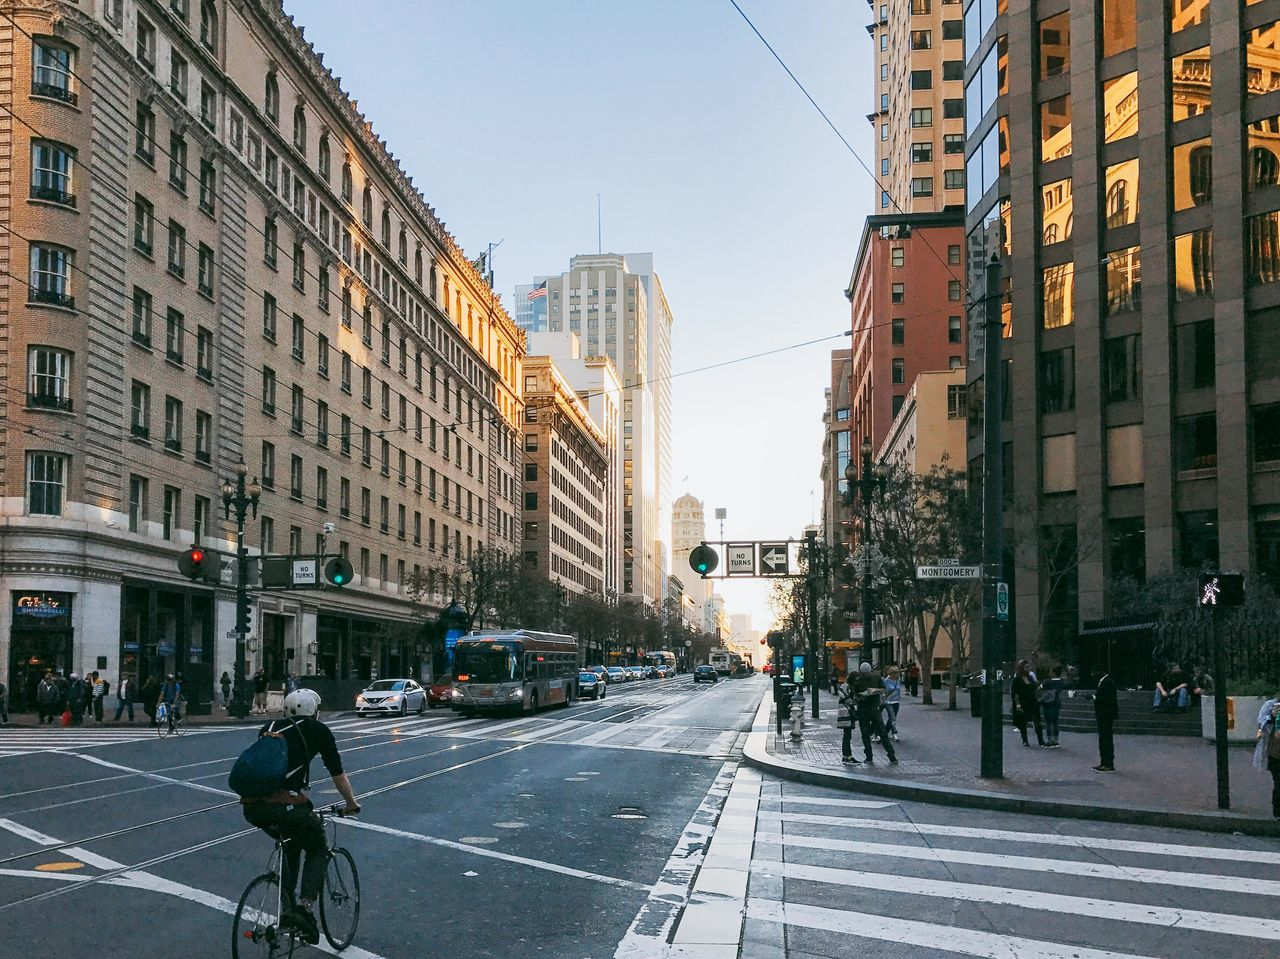 Adult Adults Only Architecture Bicycle Building Exterior Built Structure City City Life City Street Cityscape Cycling Cyclist Day One Person Outdoors People Road San Francisco